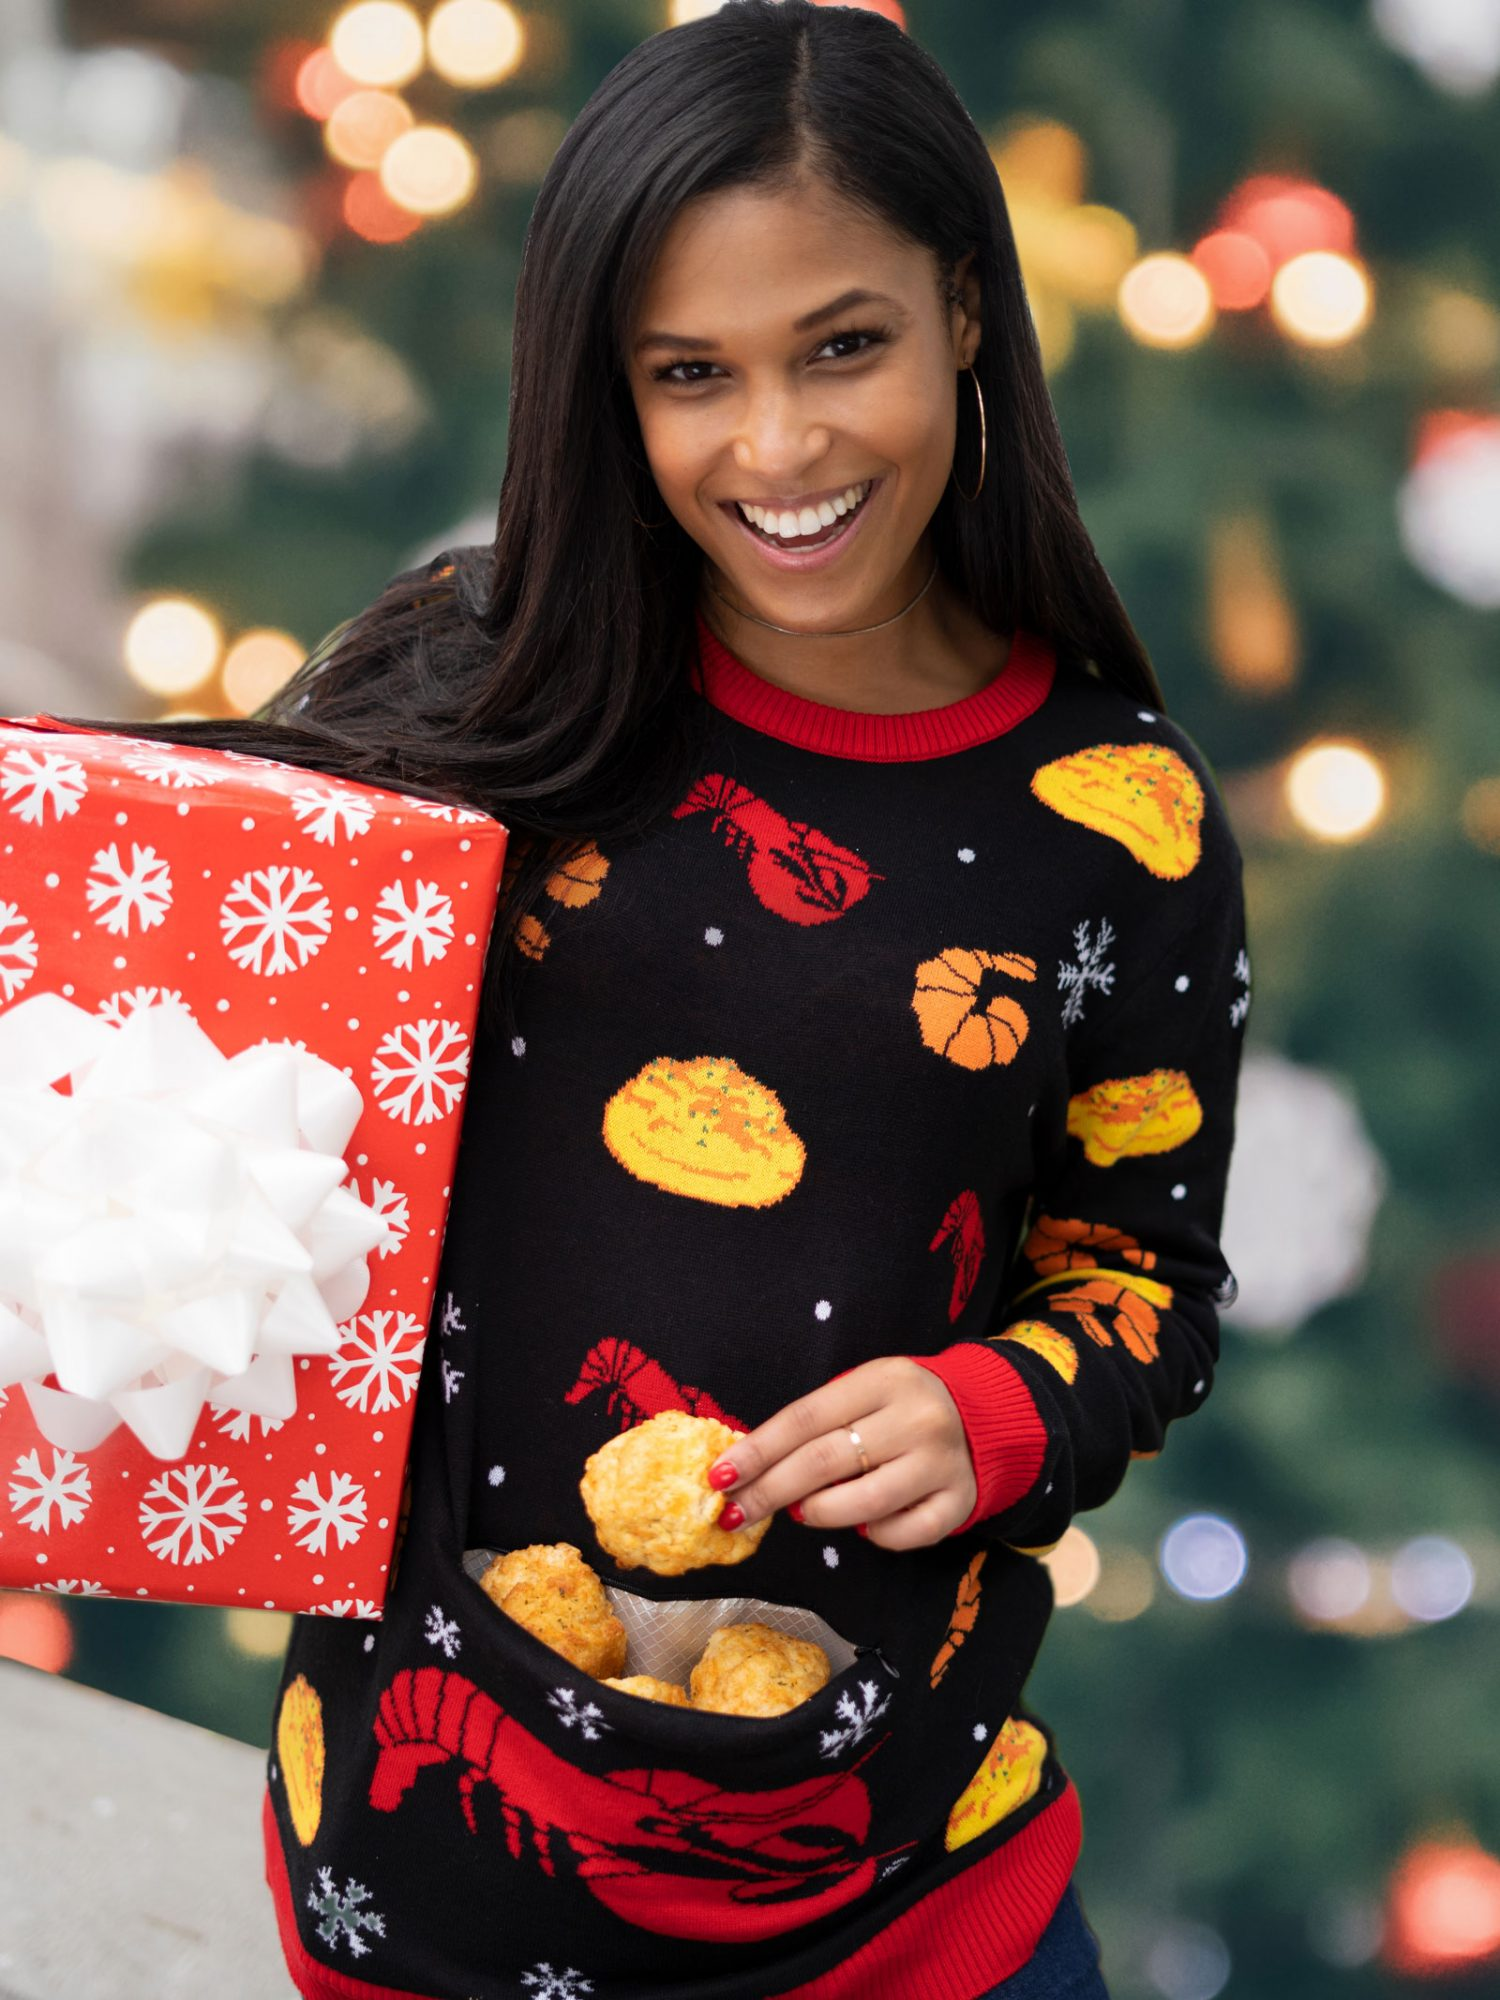 Red Lobster's Ugly Sweater Has a Cheddar Bay Biscuit Pocket red-lobster-sweater-VT-BLOG1119